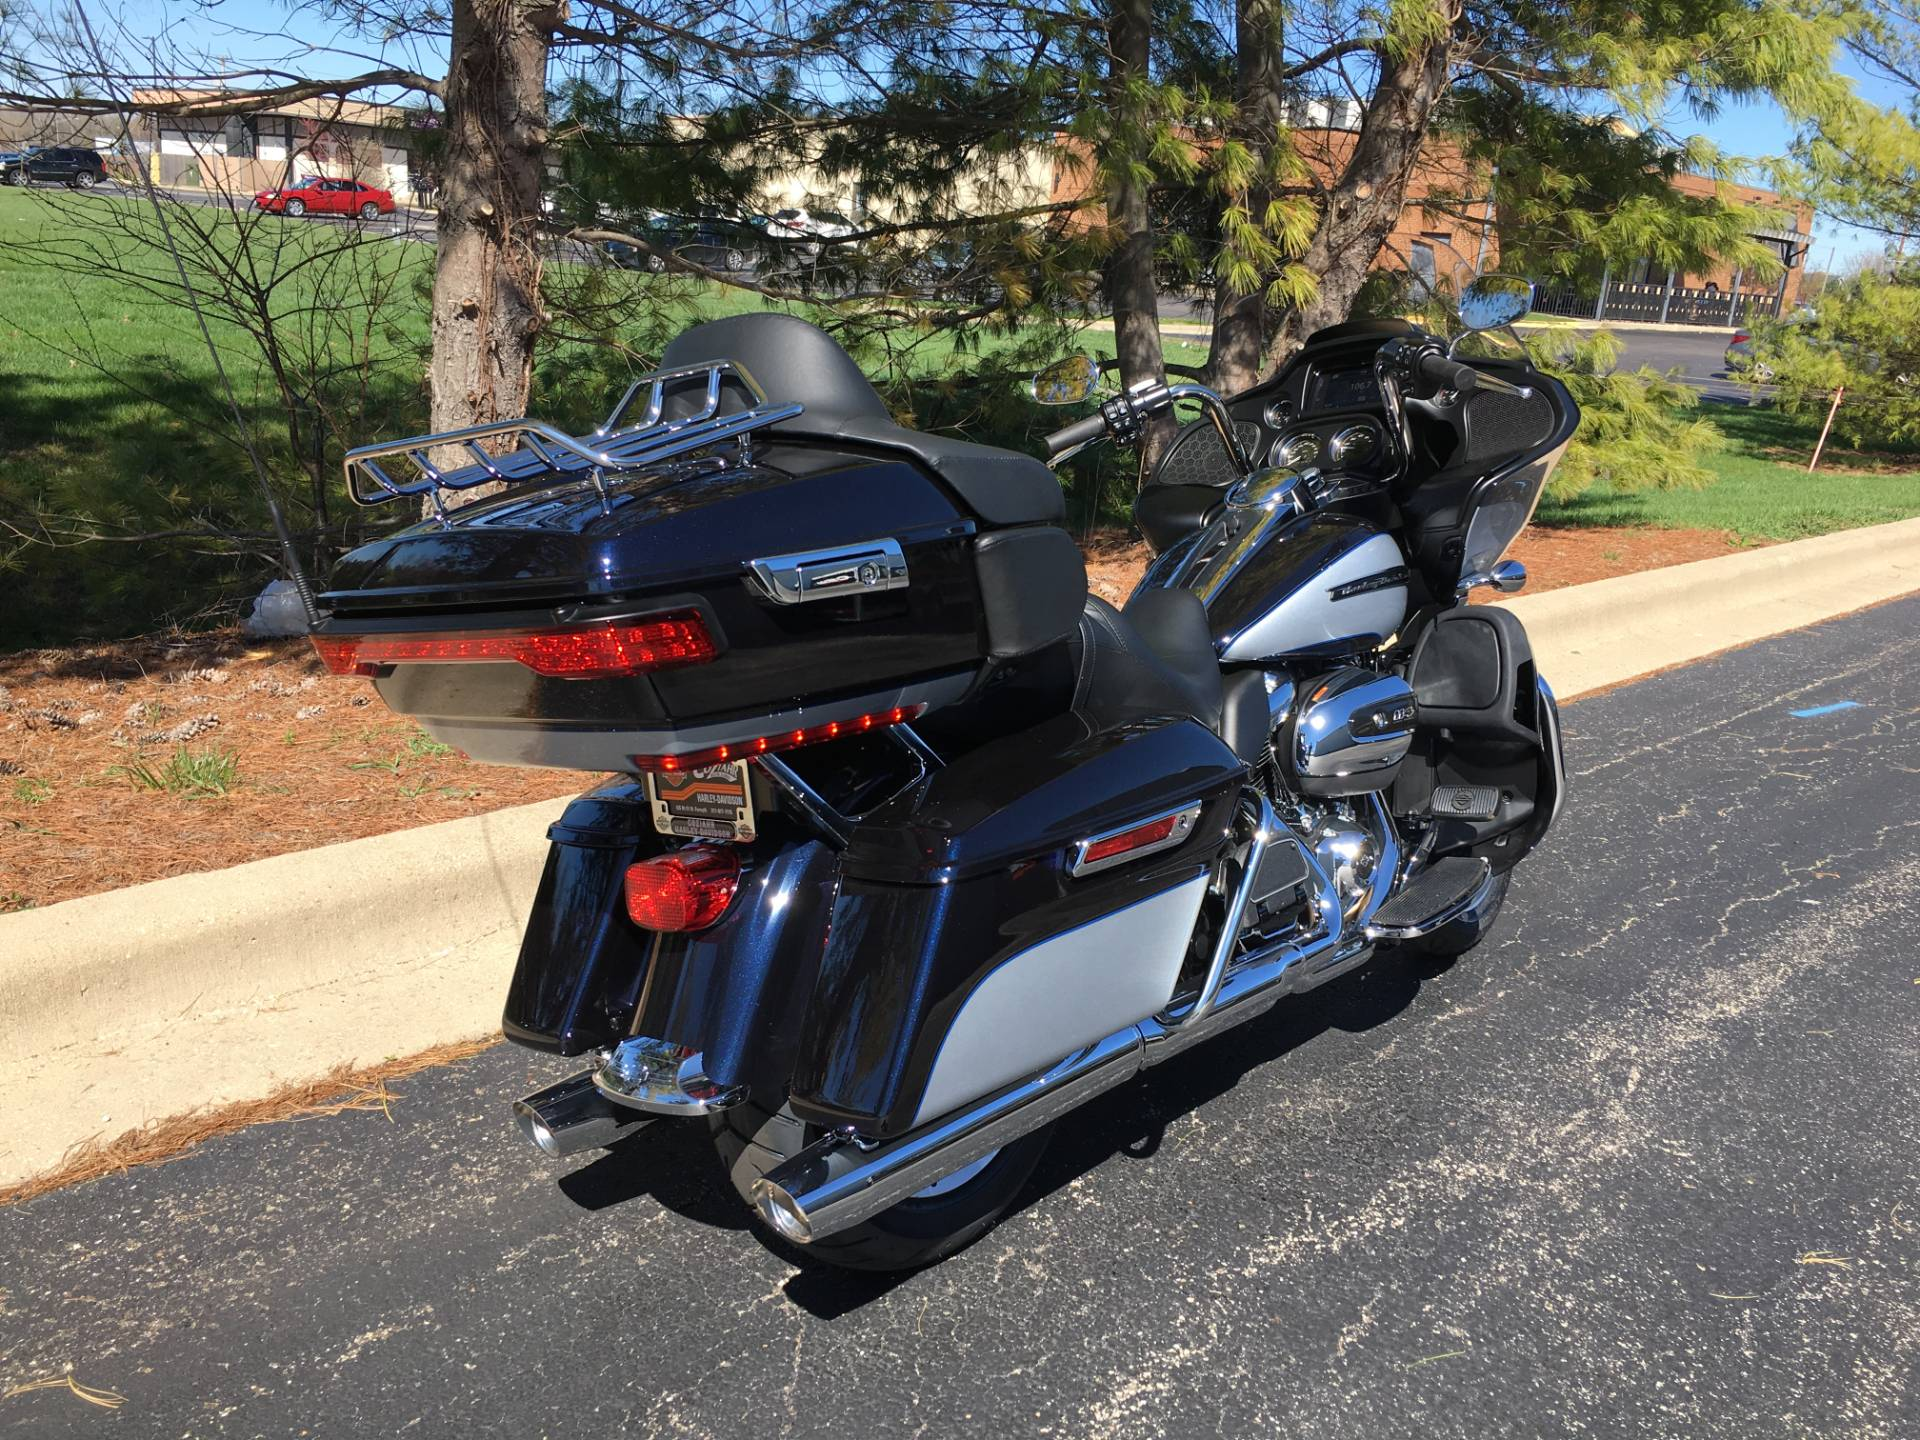 2019 Harley-Davidson Road Glide Ultra in Forsyth, Illinois - Photo 3